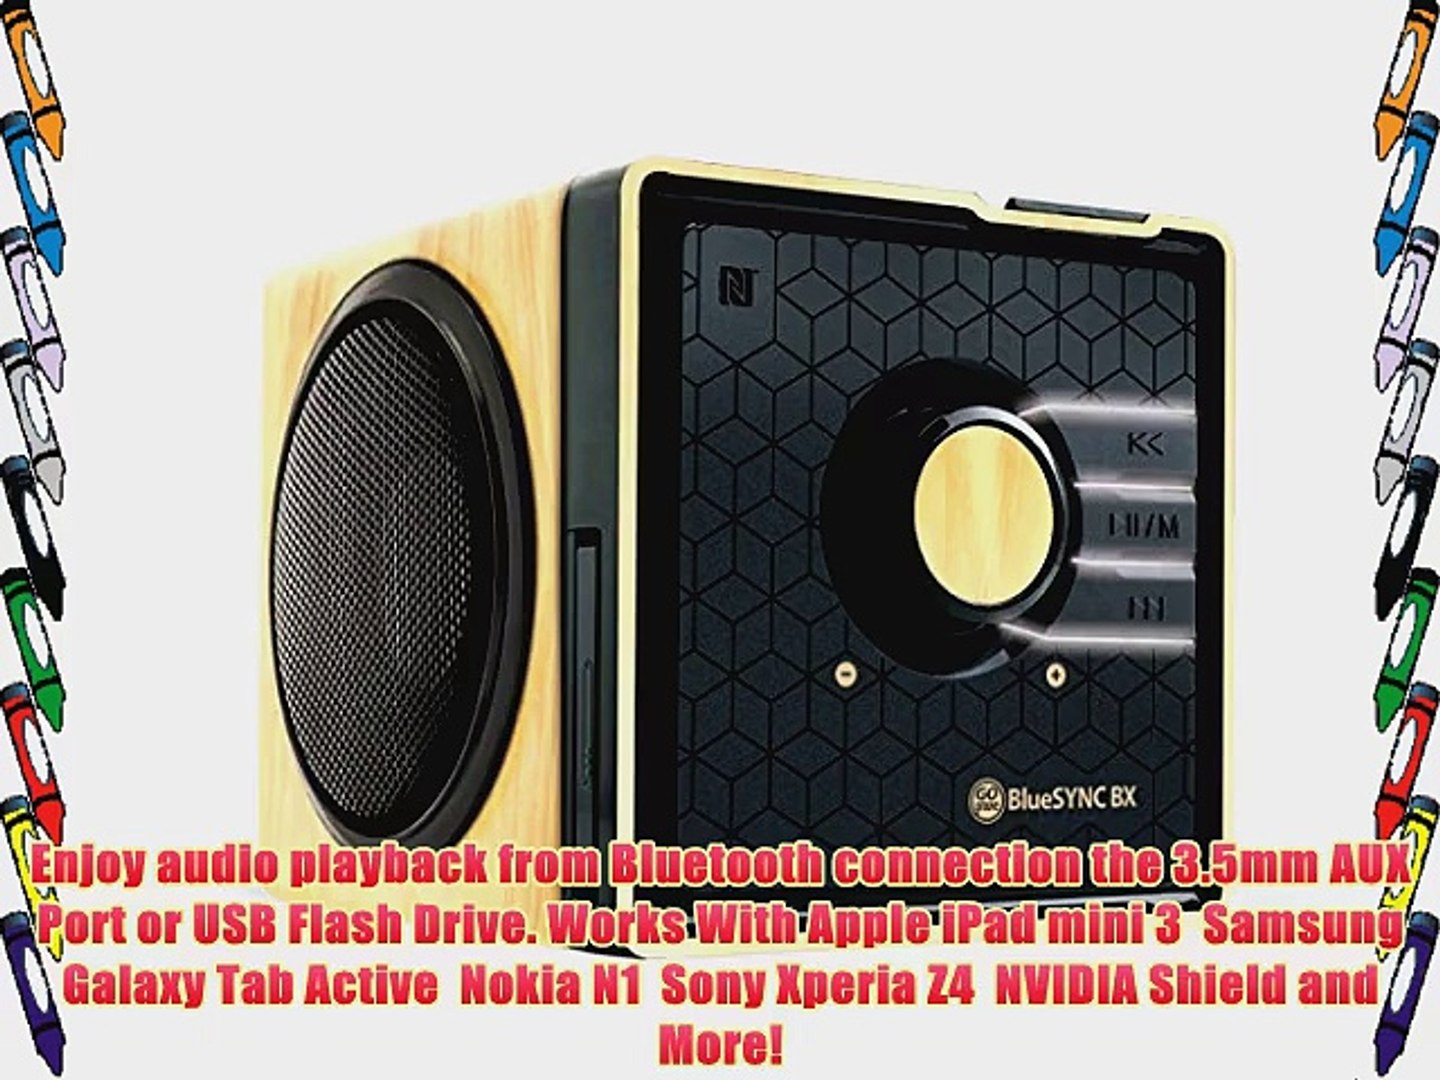 GOgroove BlueSYNC BX Rechargeable Bluetooth Wood Style